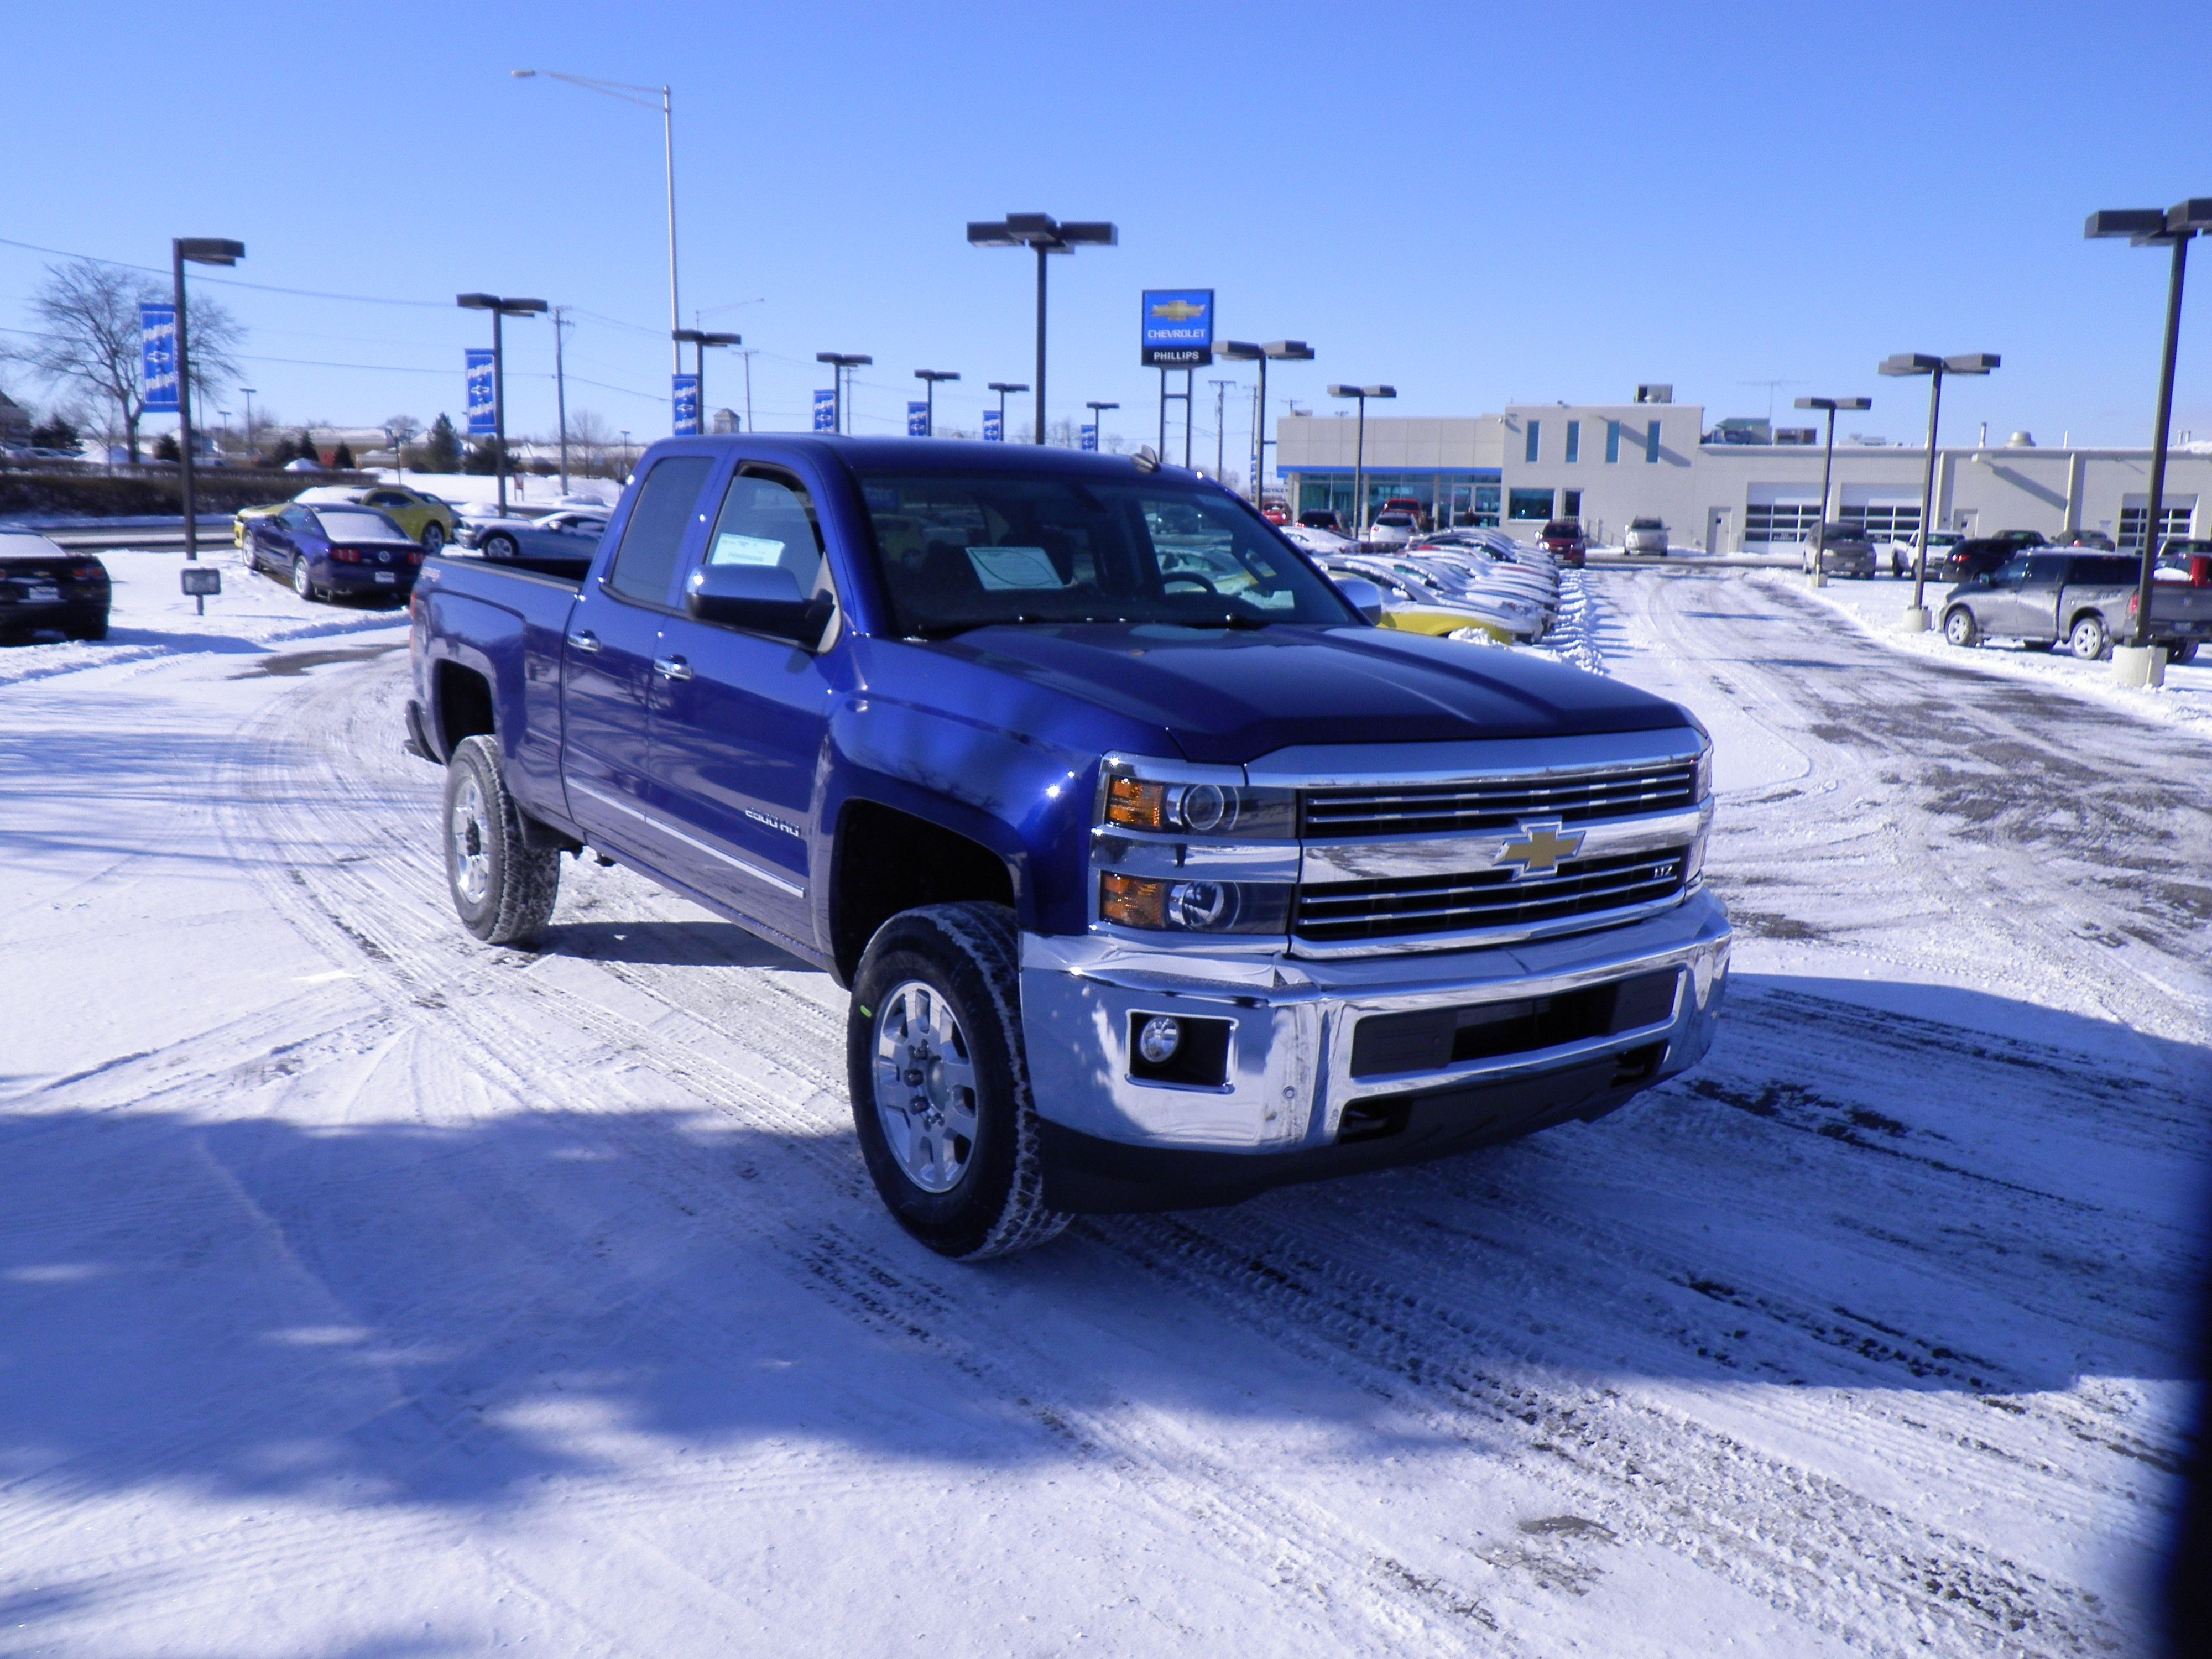 The 25 best new chevy silverado ideas on pinterest new chevy truck silverado lift kit and new silverado